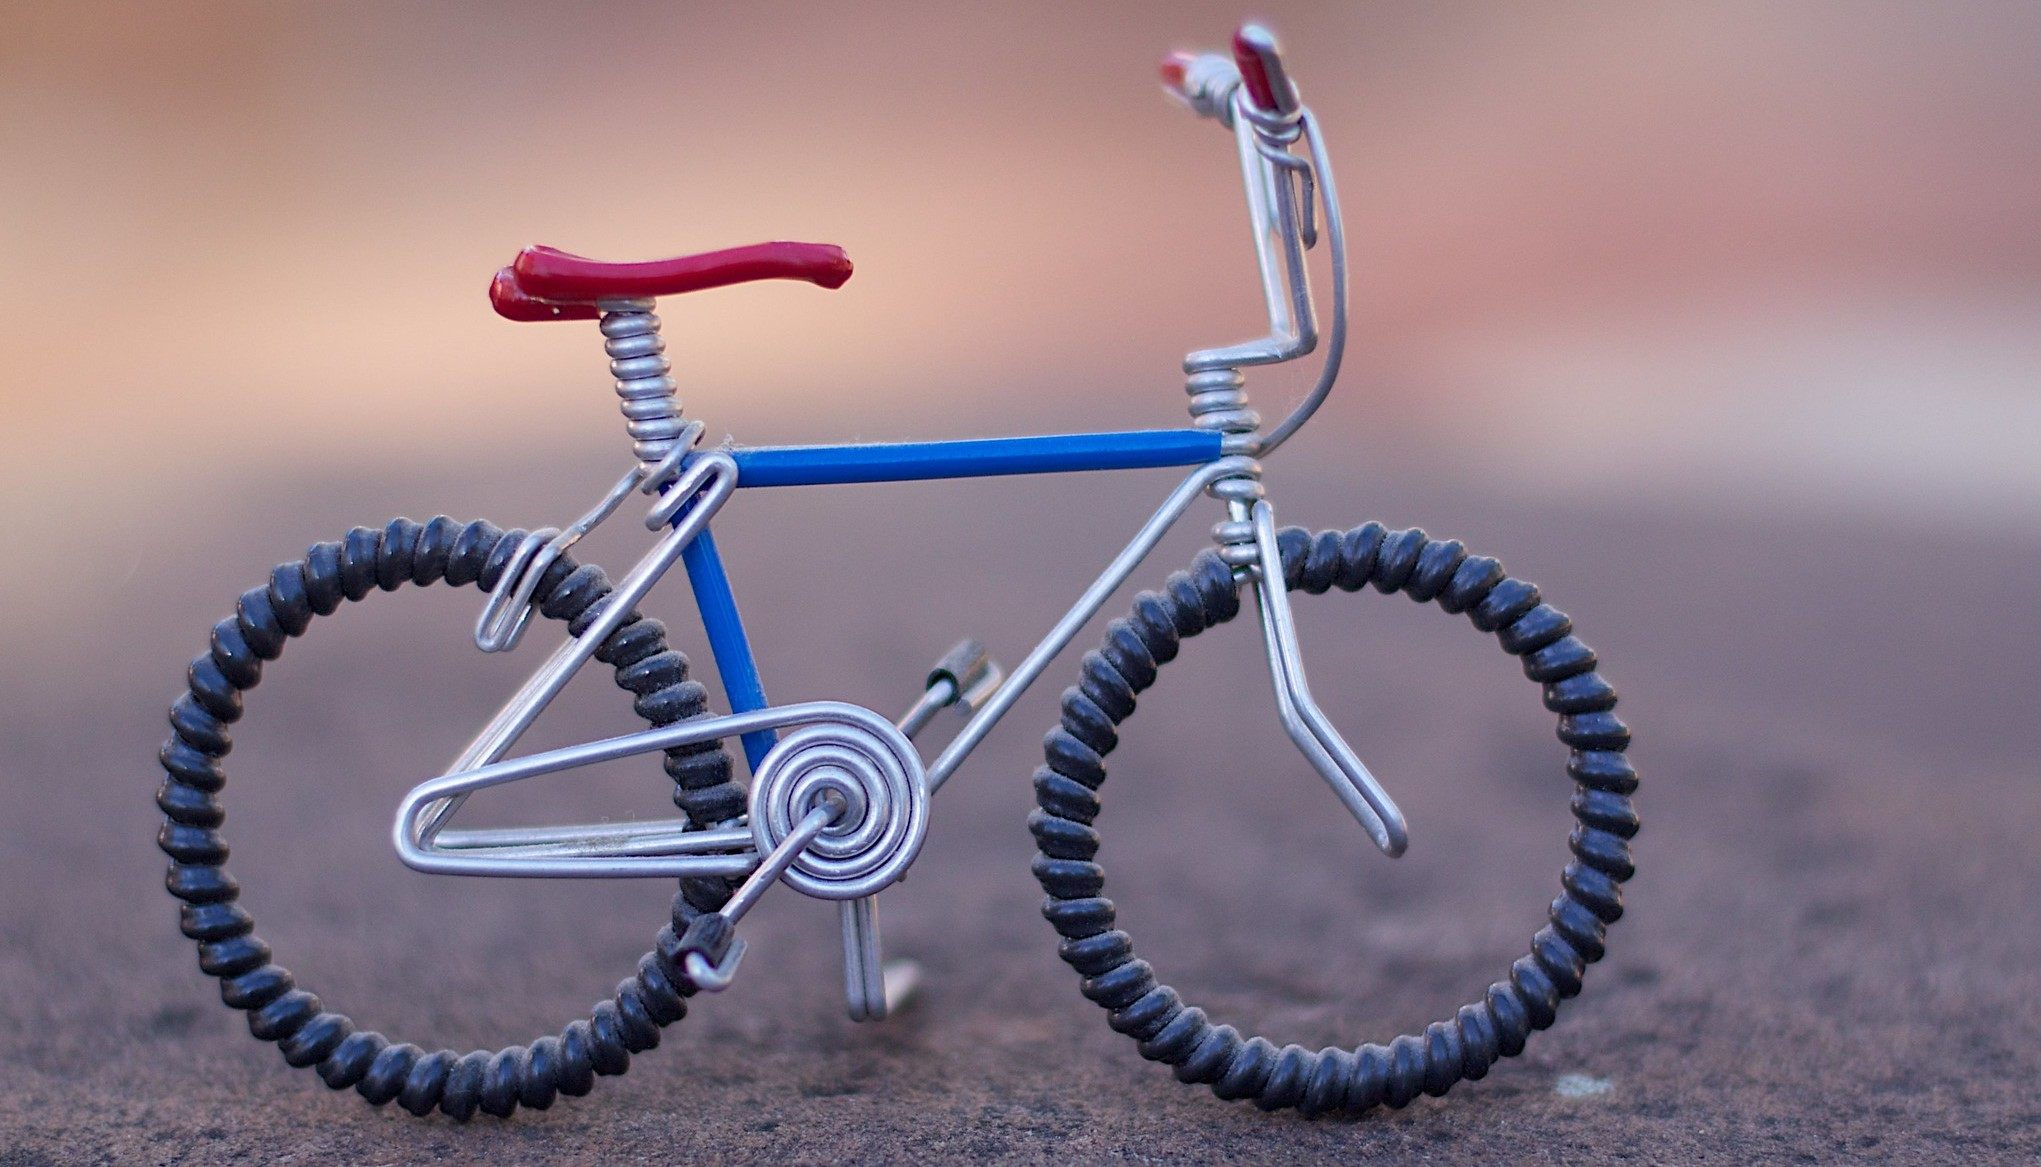 Someone built this little toy bike here, which is pretty cool